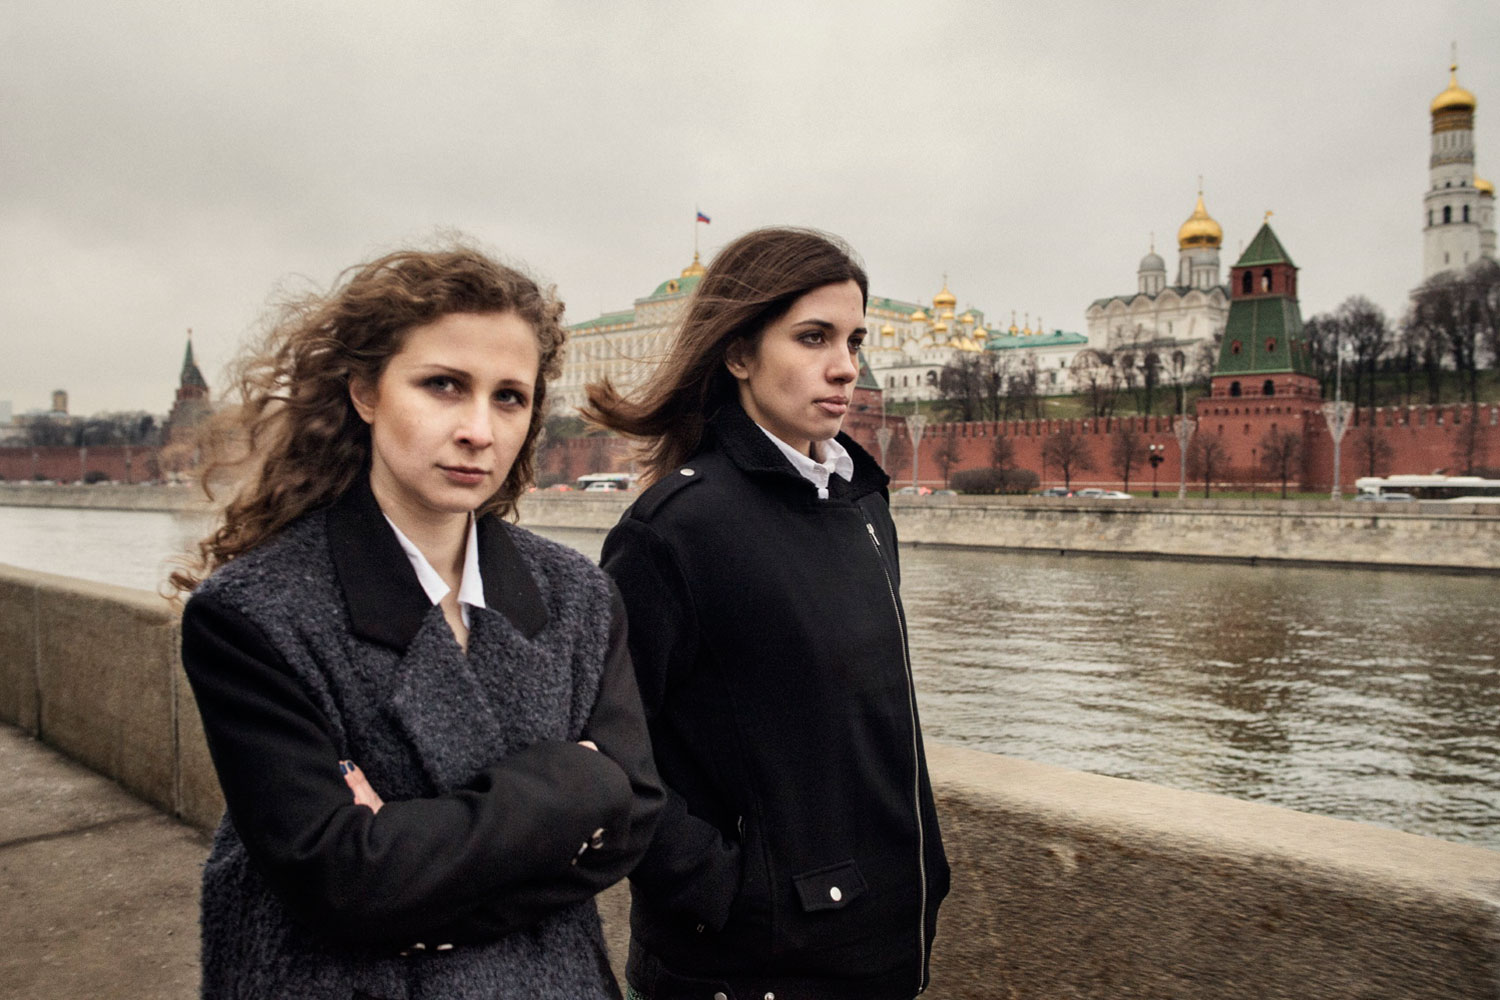 <strong>Nadezhda Tolokonnikova and Maria Alyokhina of Pussy Riot, Russia</strong>                                   Members of the feminist punk rock collective were jailed after protesting Russian President Putin in a church. The group has since used its notoriety to promote human rights issues. The very name of the band is meant to turn something passive into something powerful.